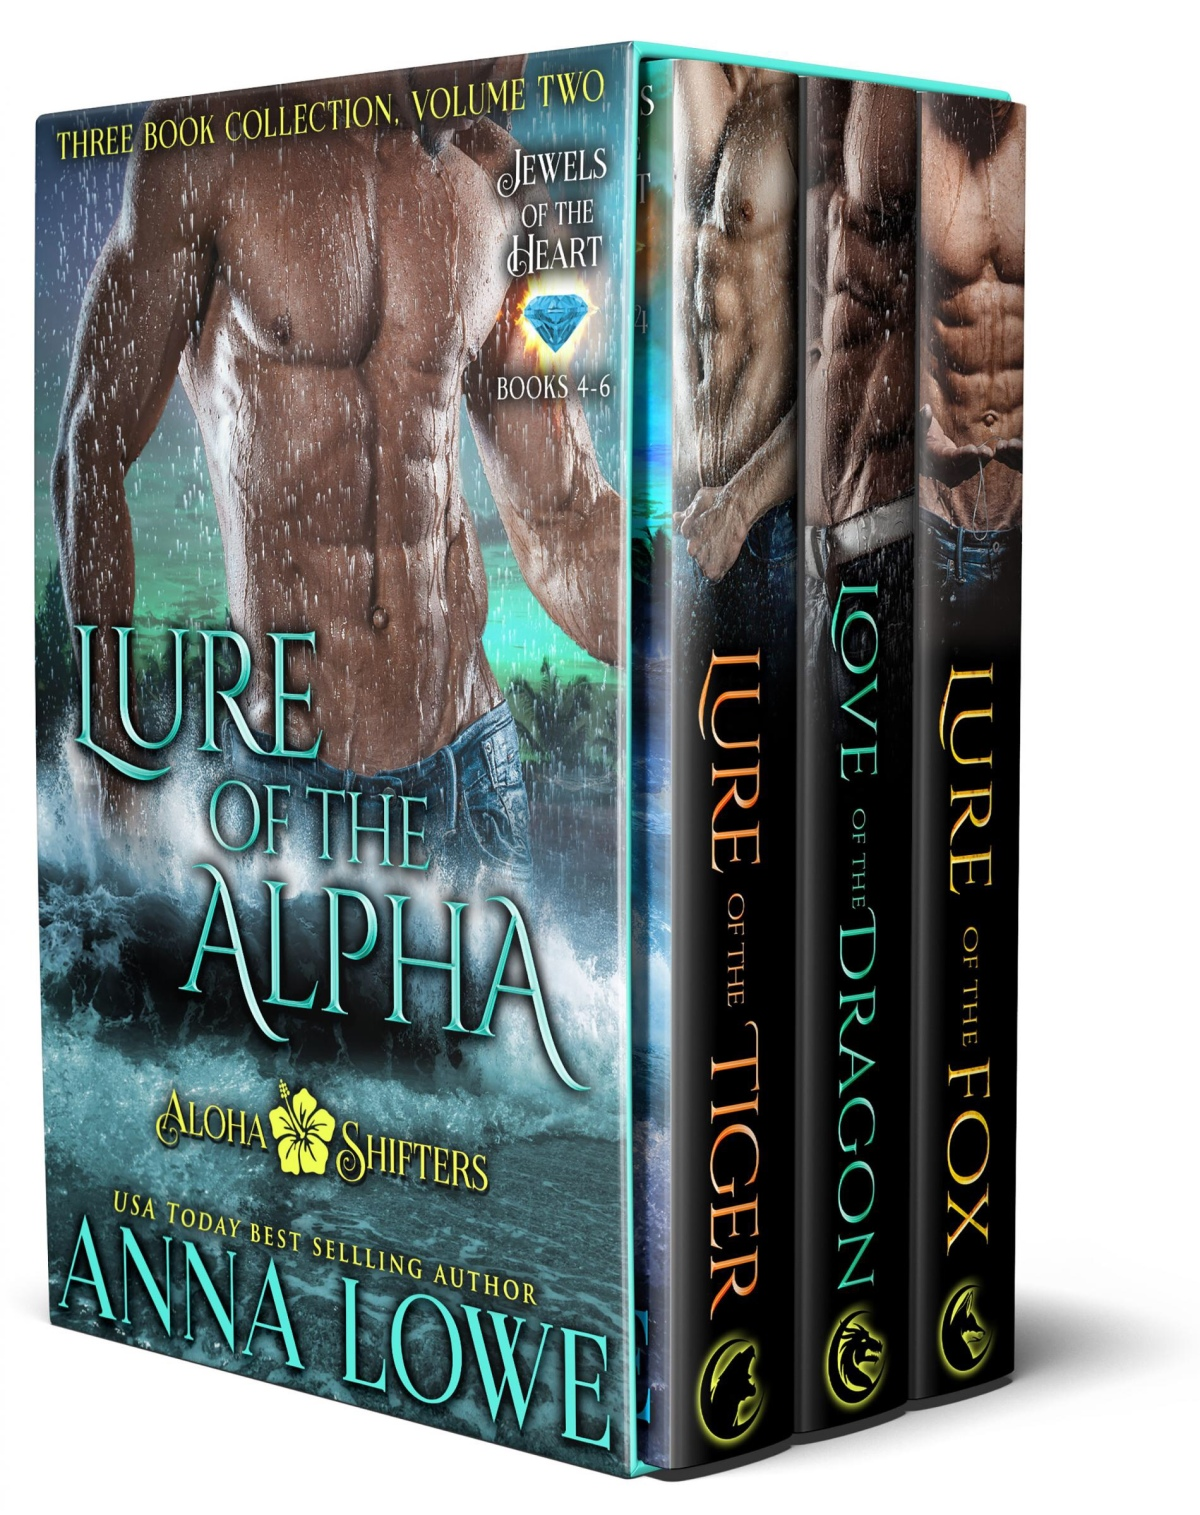 Lure of the Alpha: Three Book Collection – Volume2